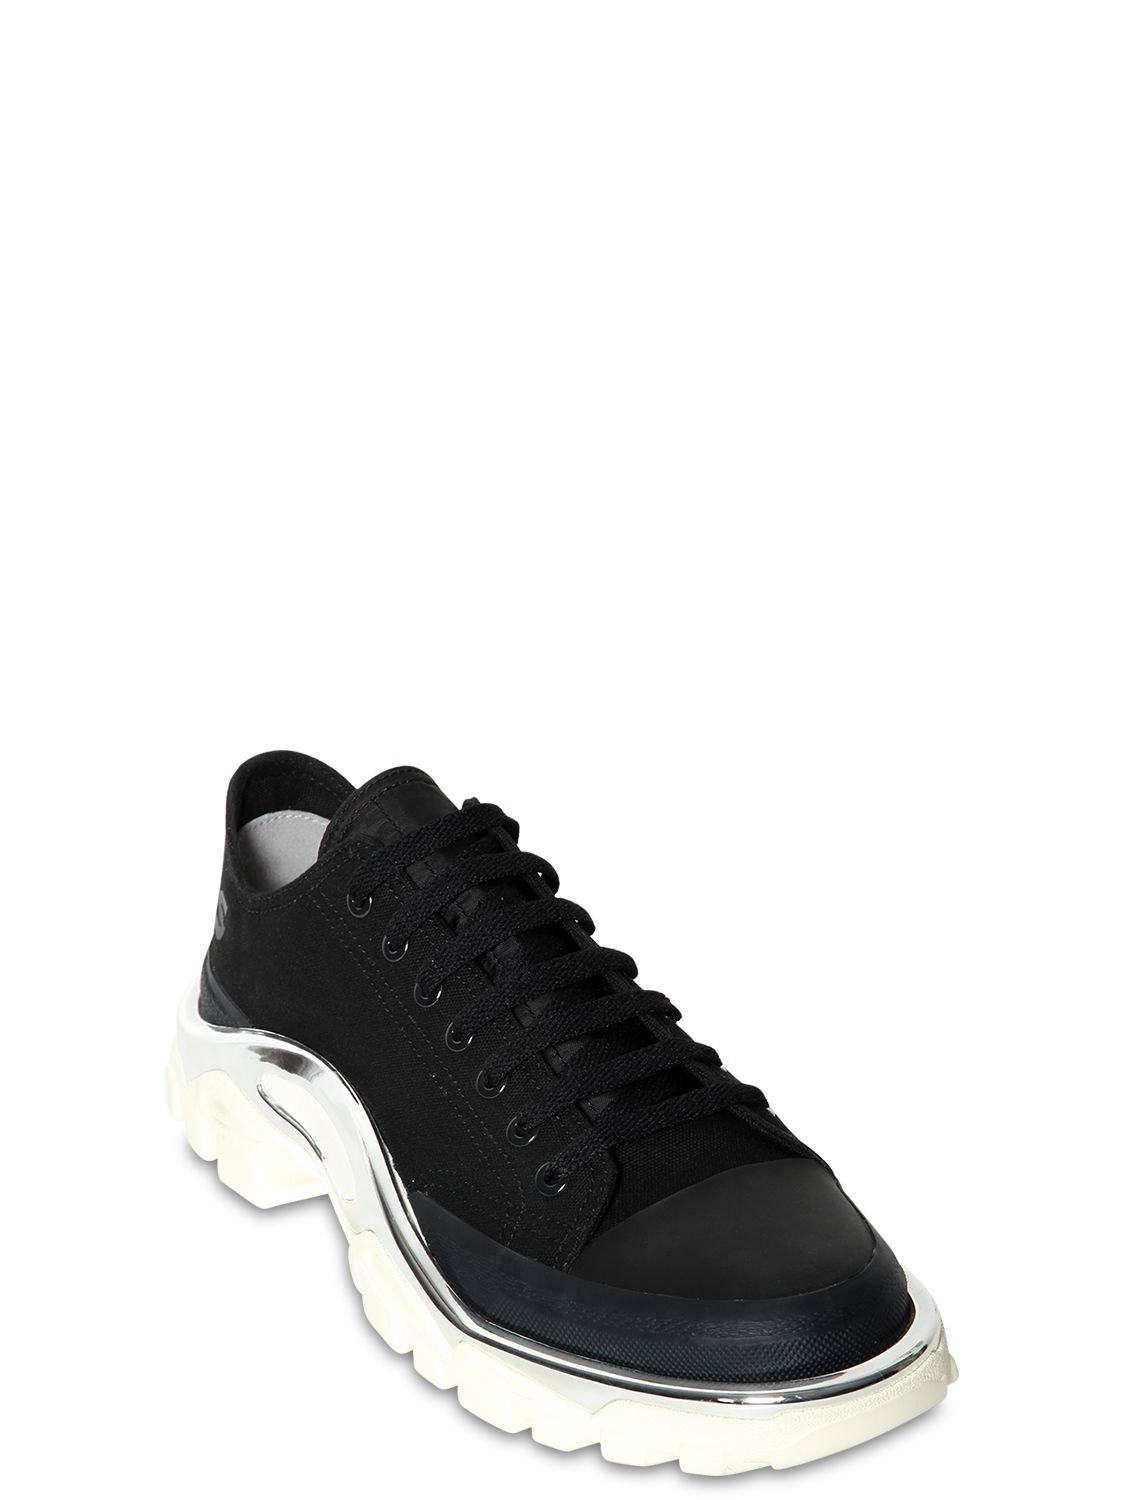 competitive price 5715f dc422 Adidas By Raf Simons - Black Rs Detroit Runner Sneakers for Men - Lyst.  View fullscreen